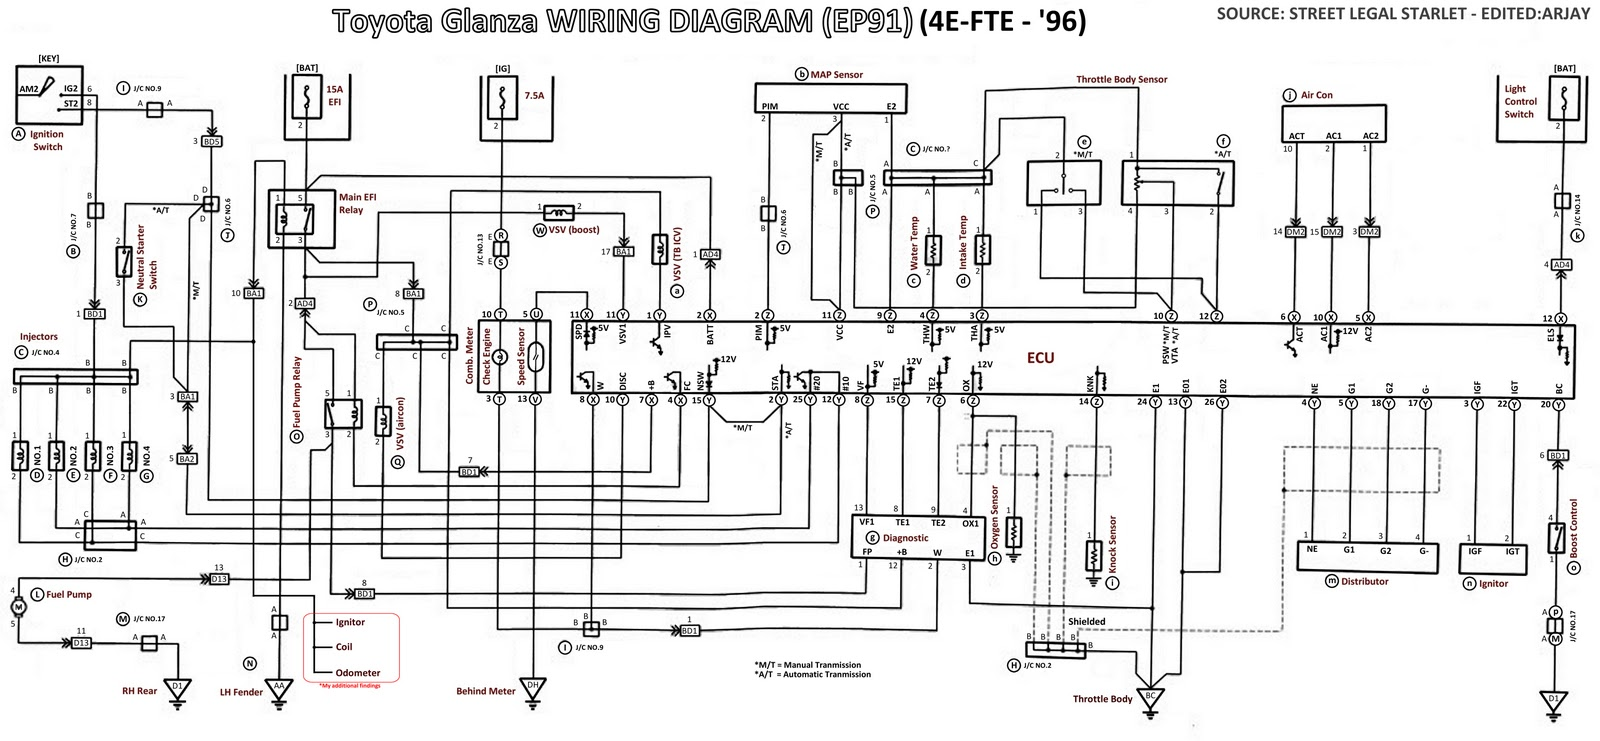 help with monsoon wiring on a toyota glanza ep91 4efte engine, Wiring diagram